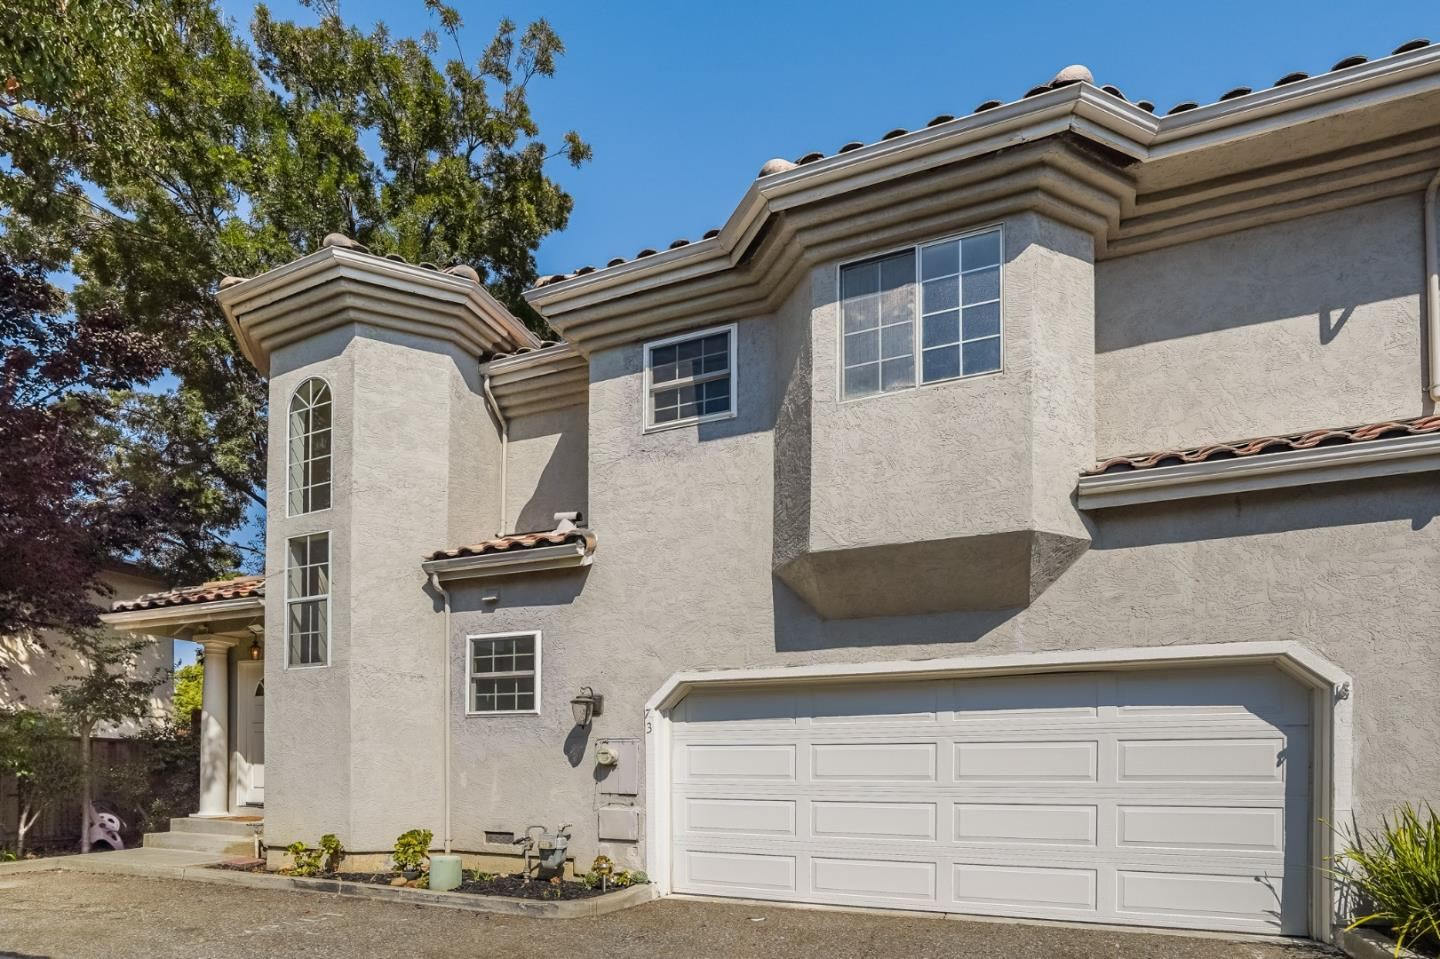 Photo for 73 East Latimer Avenue, CAMPBELL, CA 95008 (MLS # ML81861948)